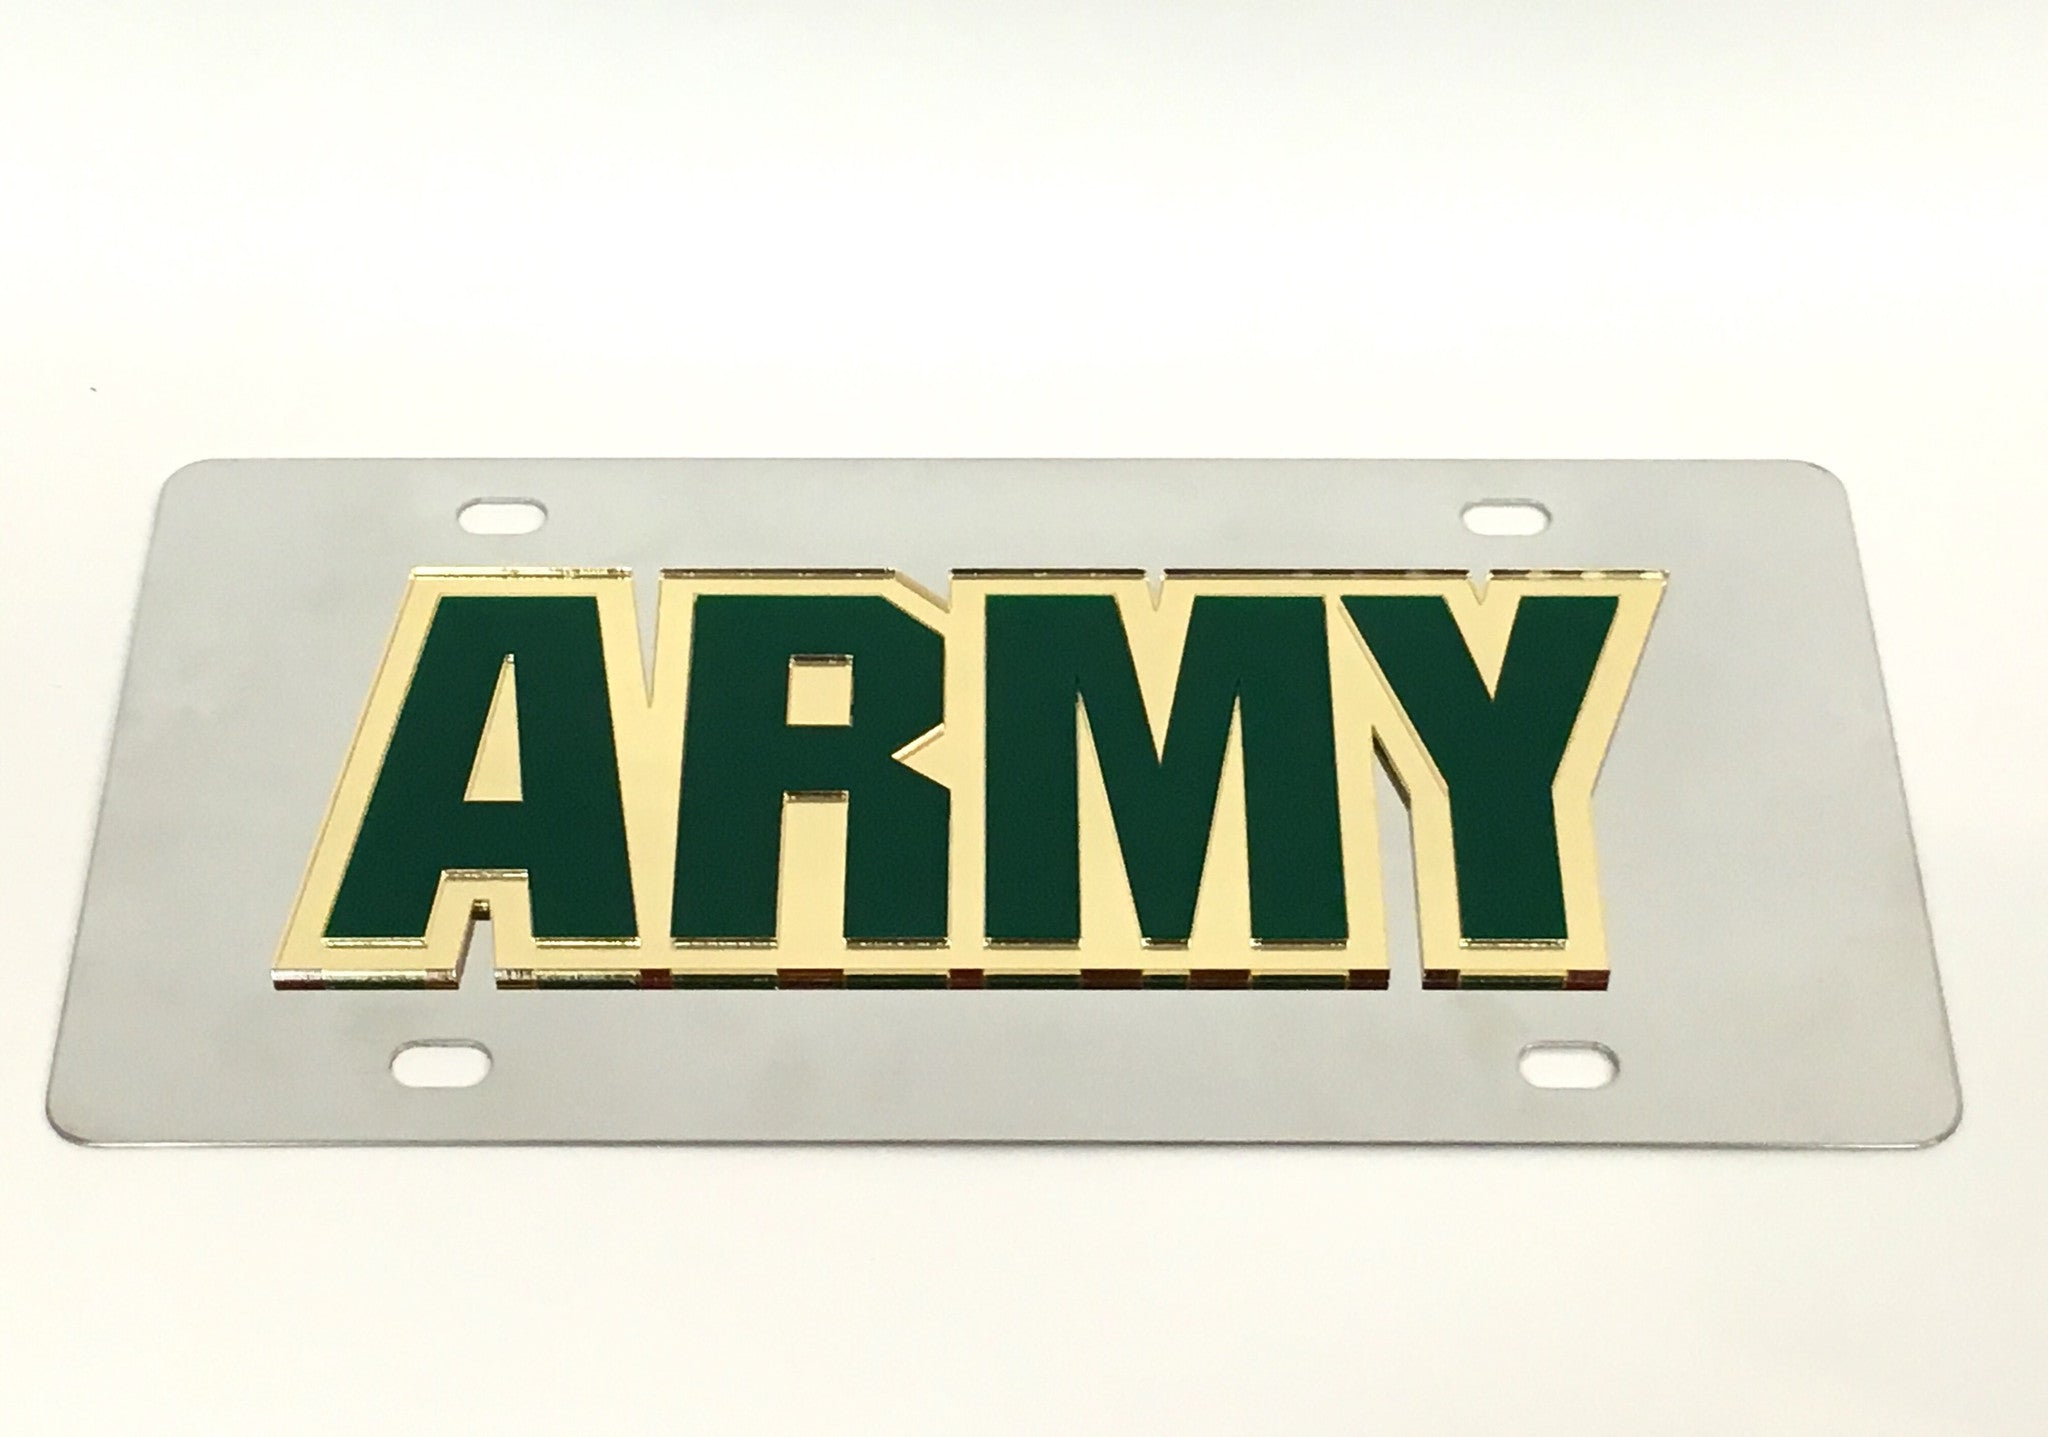 U.S. Army Stainless Steel License Plate